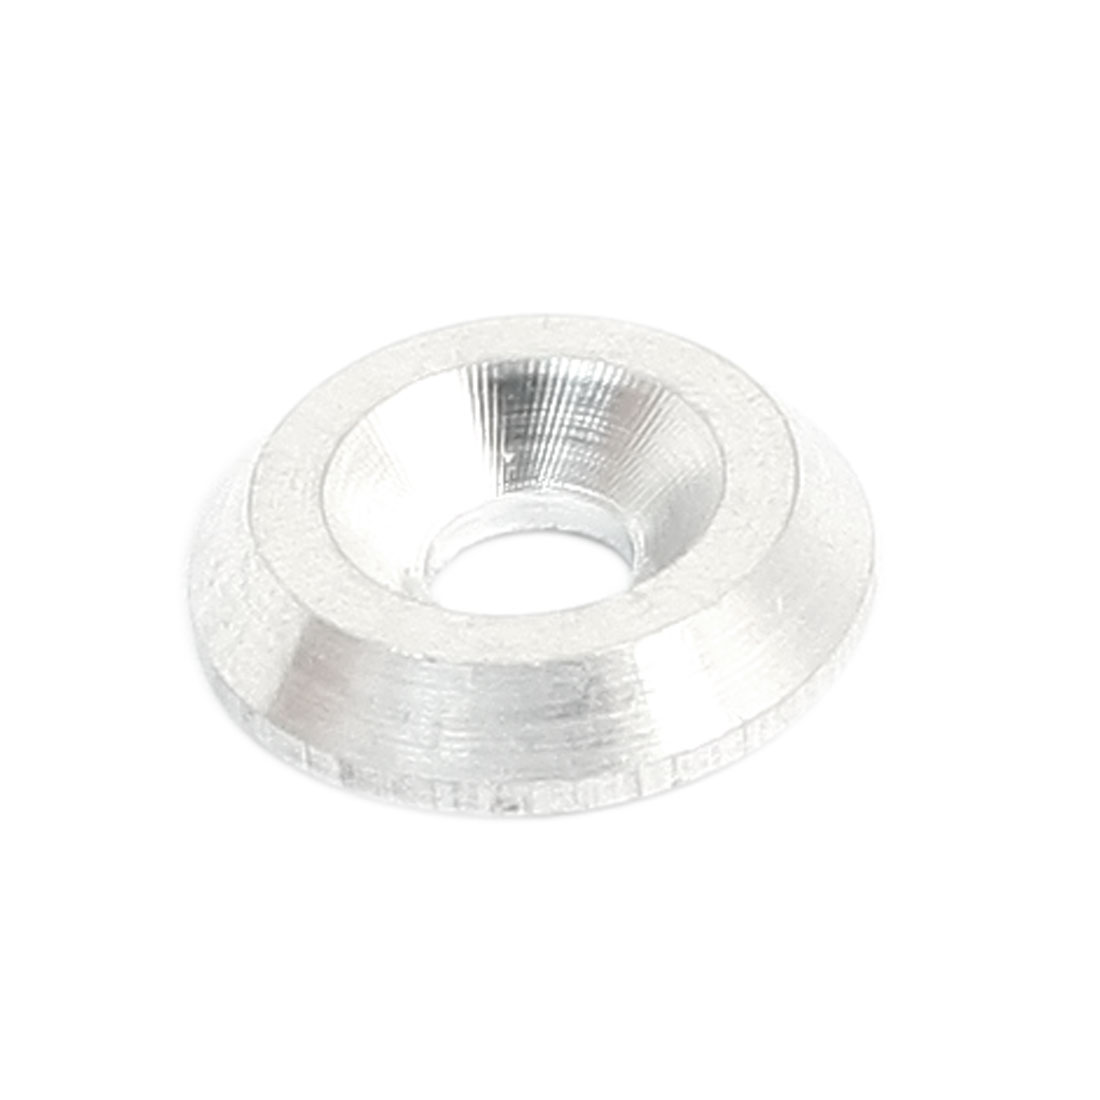 Silver Tone Aluminium Alloy Countersink Washer Spacer Adaptor 4mm x 14mm x 3mm for RC Model Toy